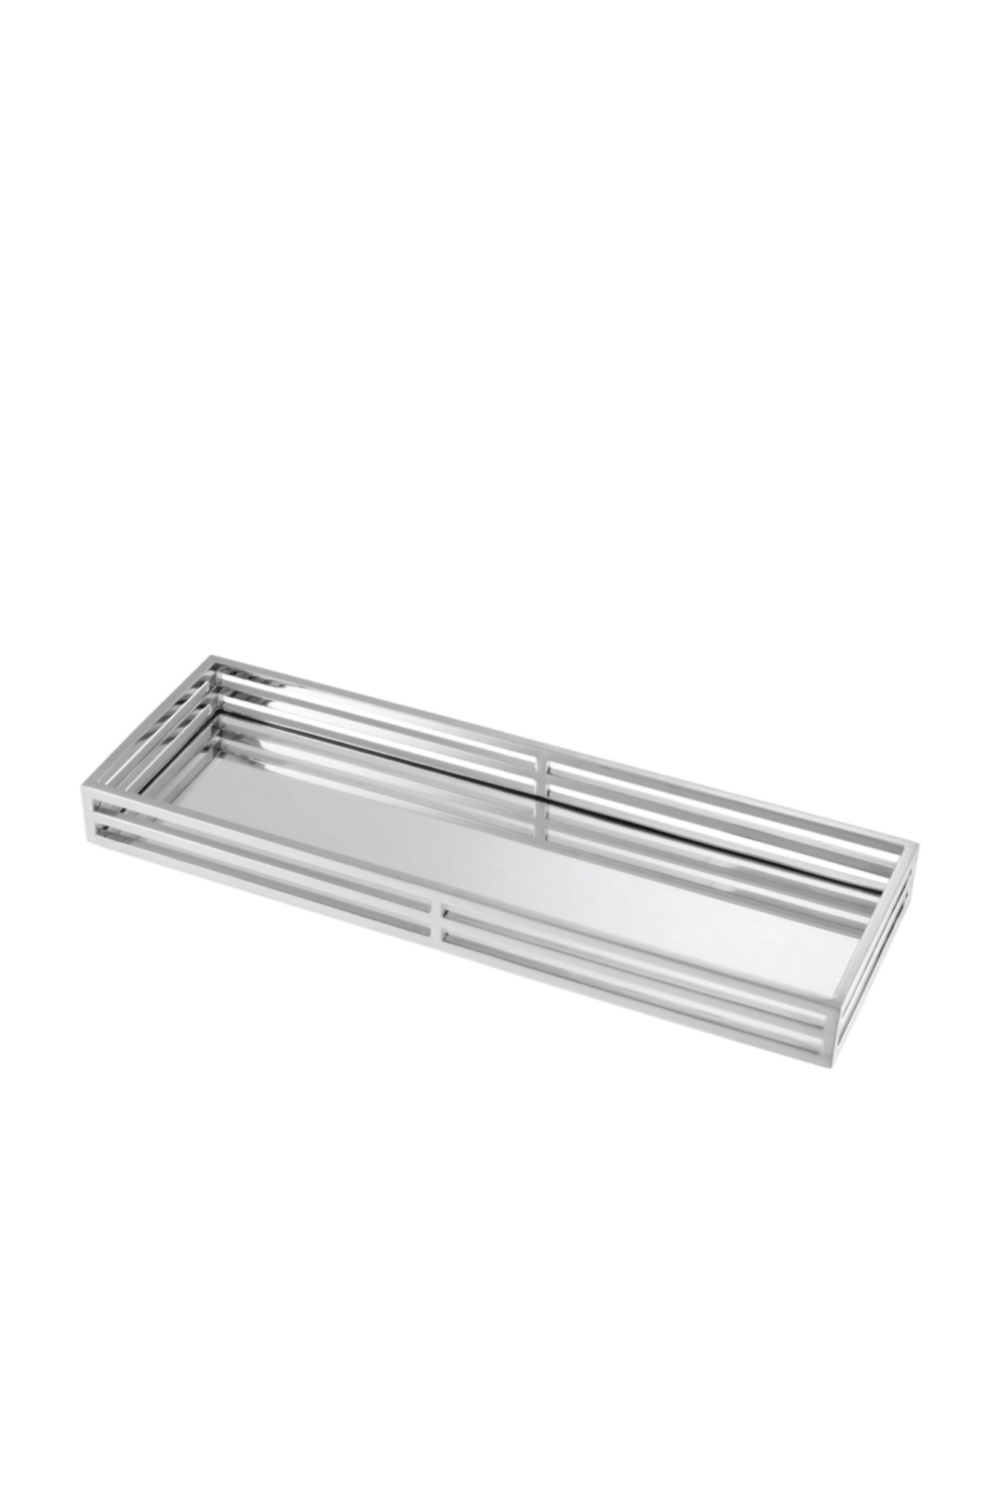 Silver Serving Tray | Eichholtz Ersa